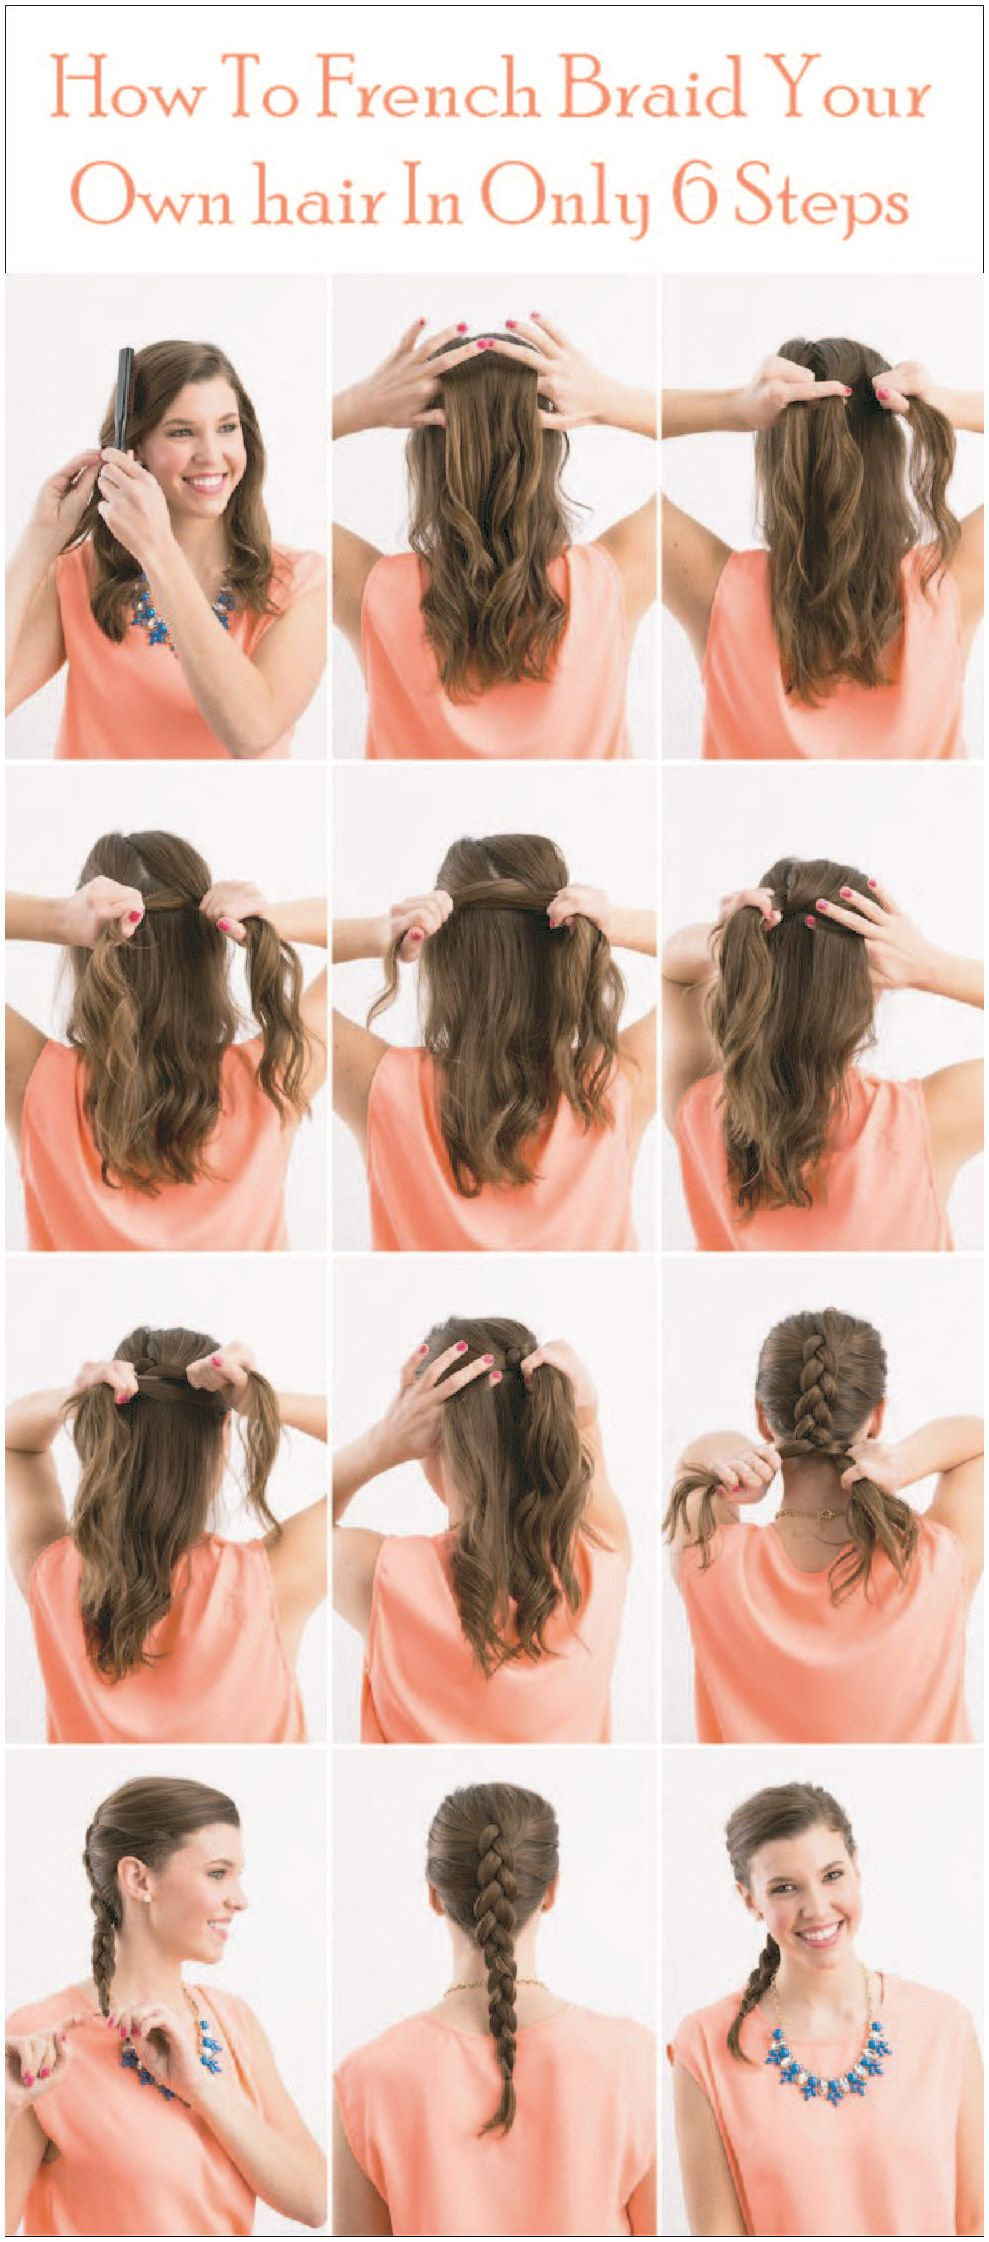 Fancy French Braids Want To Know How To French Braid Your Hair French Braids Are Very Easy To Do On Braids For Short Hair French Braid Short Hair Hair Styles